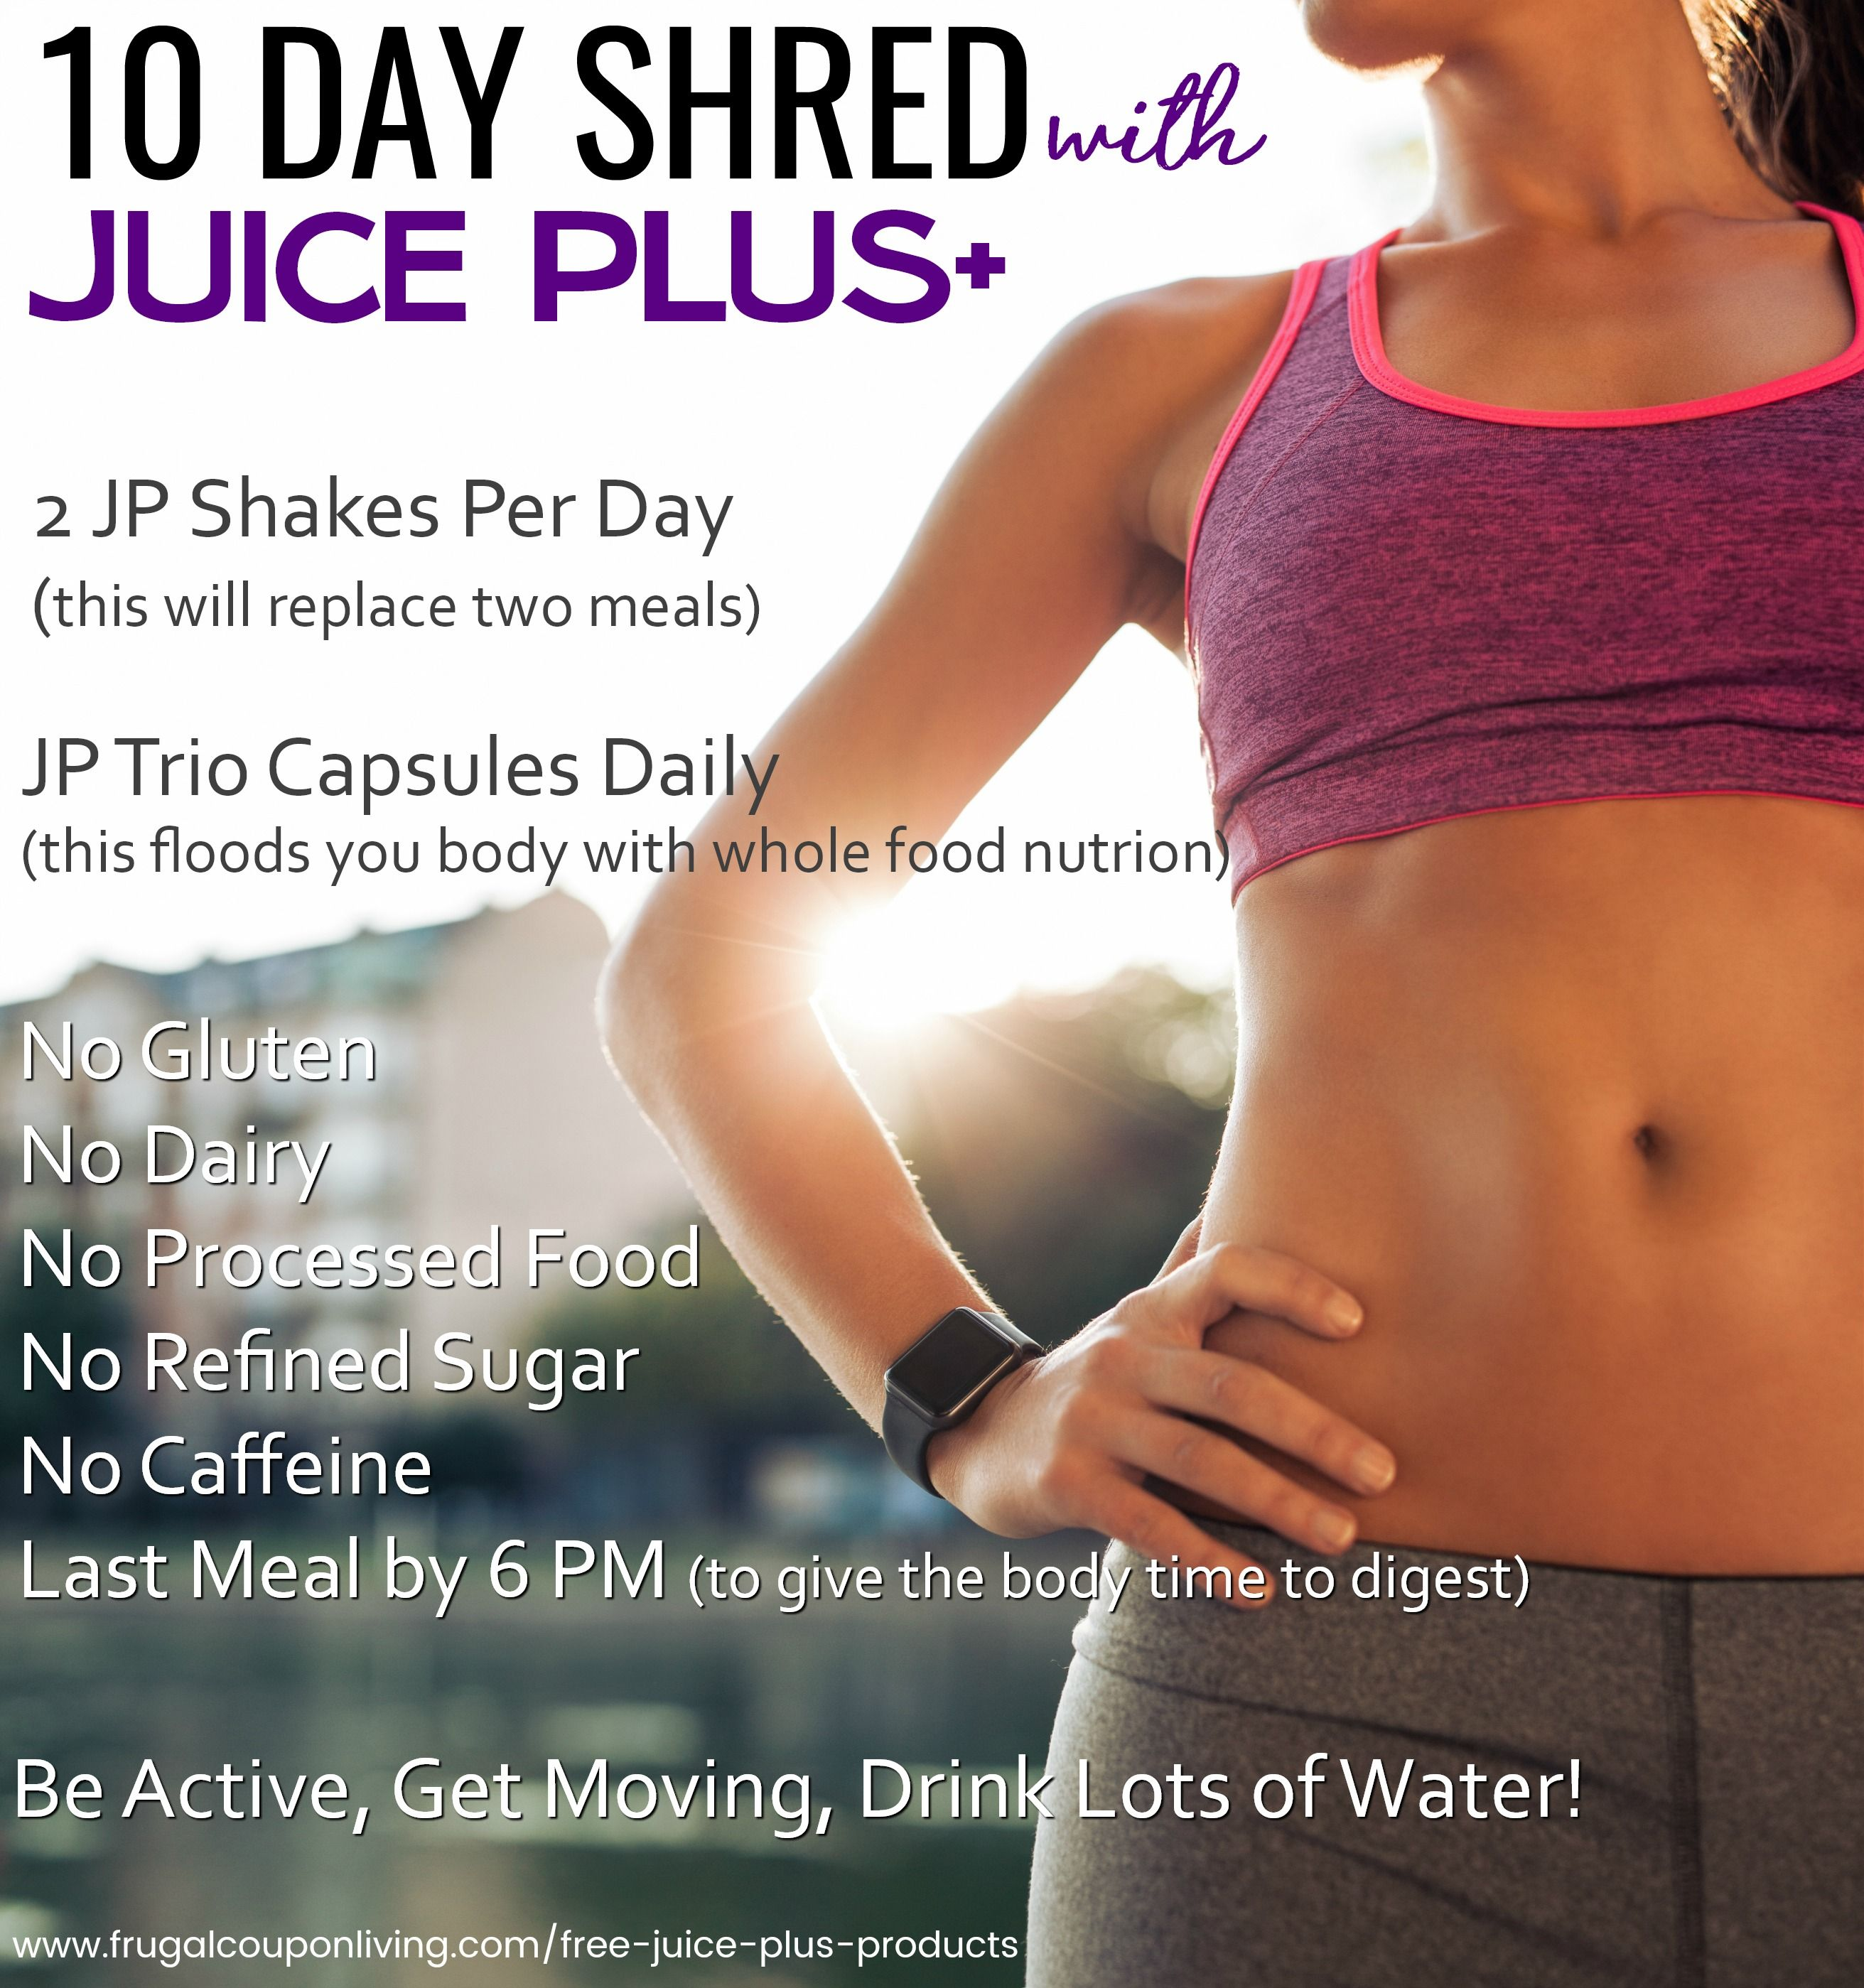 Juice Plus 10 Day Shred. Juice plus complete protein shakes recipes plus  diet challenge. Includes Juice Plus Trio Capsules on Frugal Coupon Living  ...